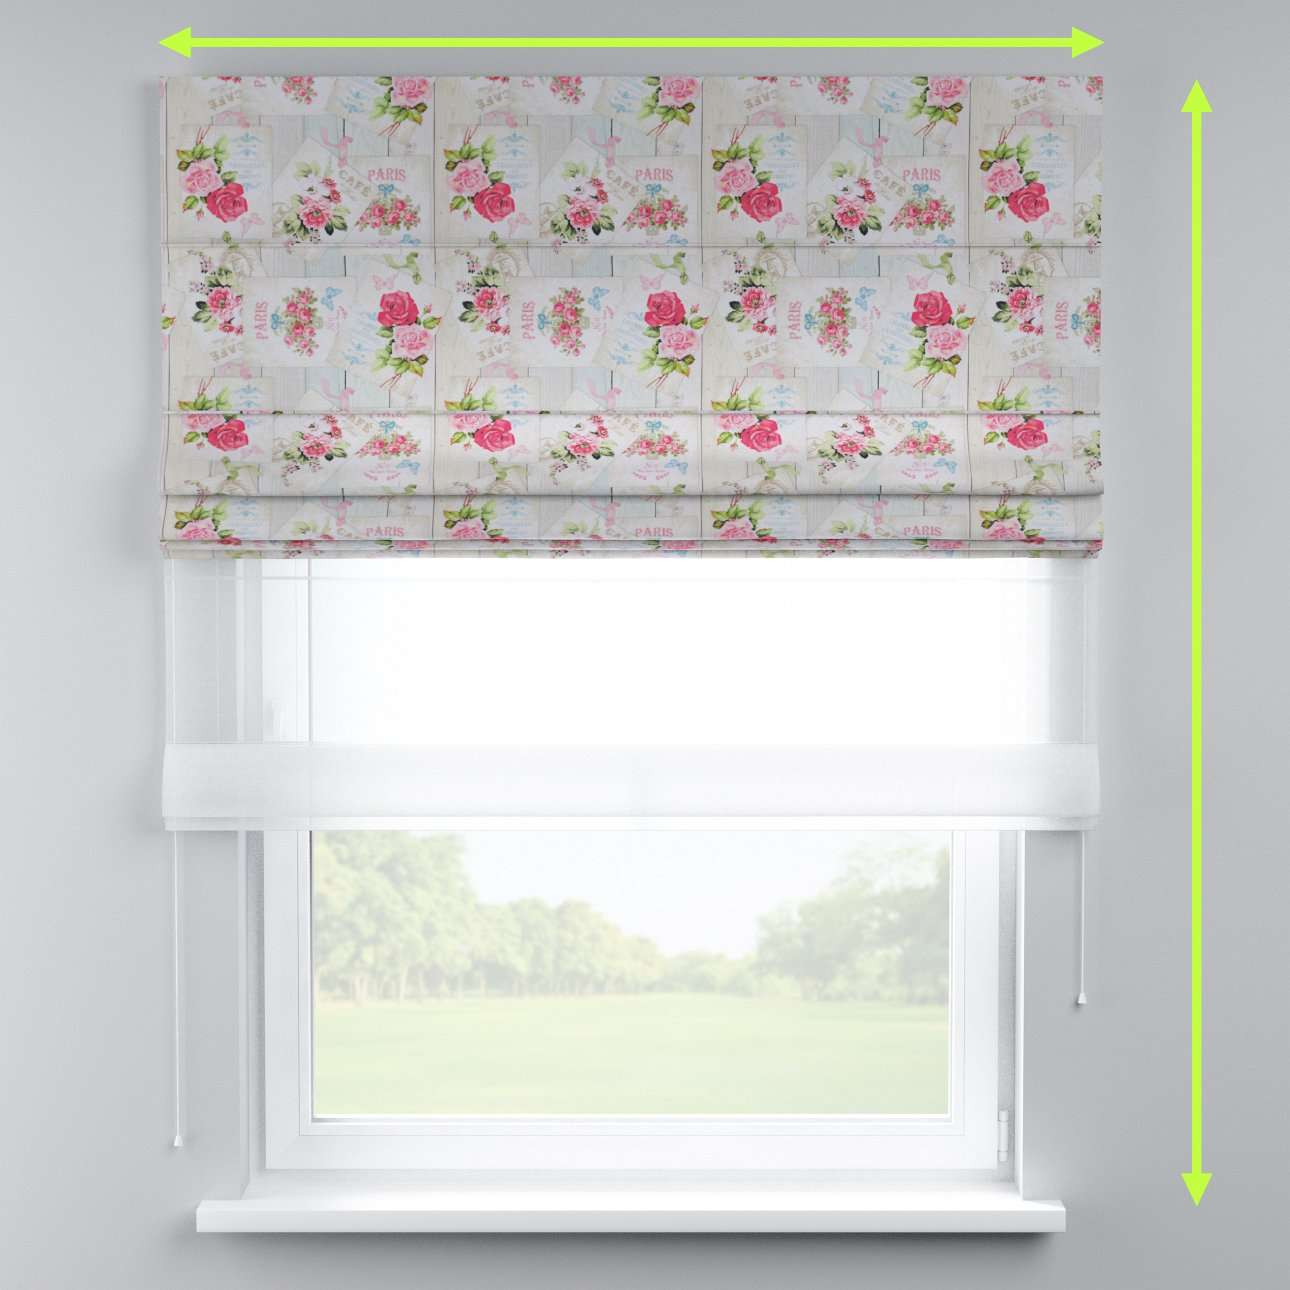 Voile and fabric roman blind (DUO II) in collection Ashley, fabric: 140-19